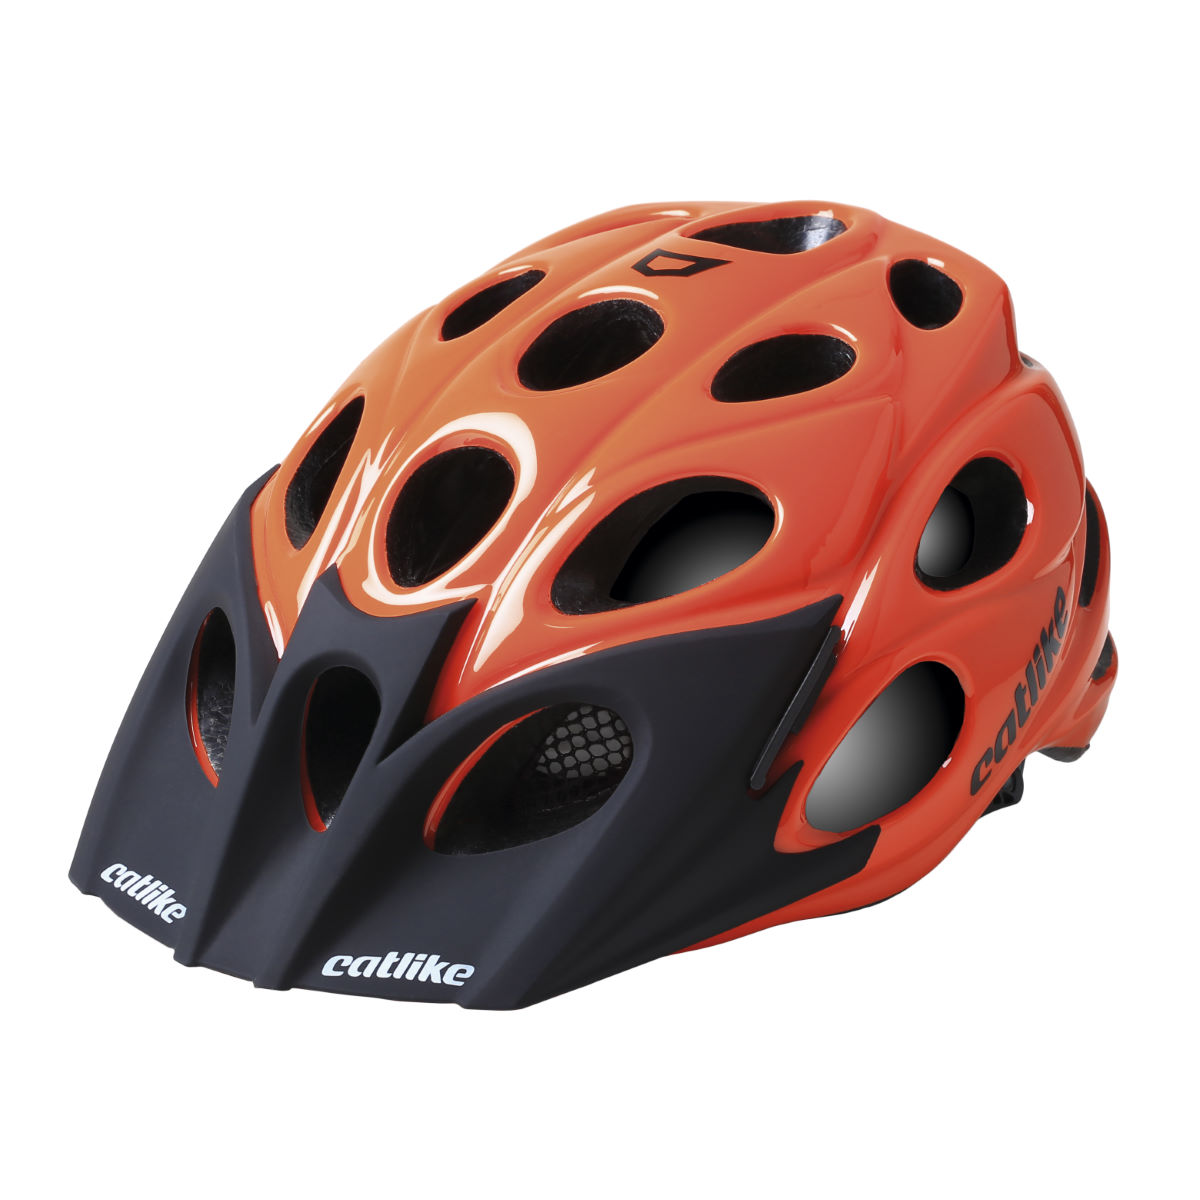 Casque VTT Catlike Leaf - M Orange Glossy Casques